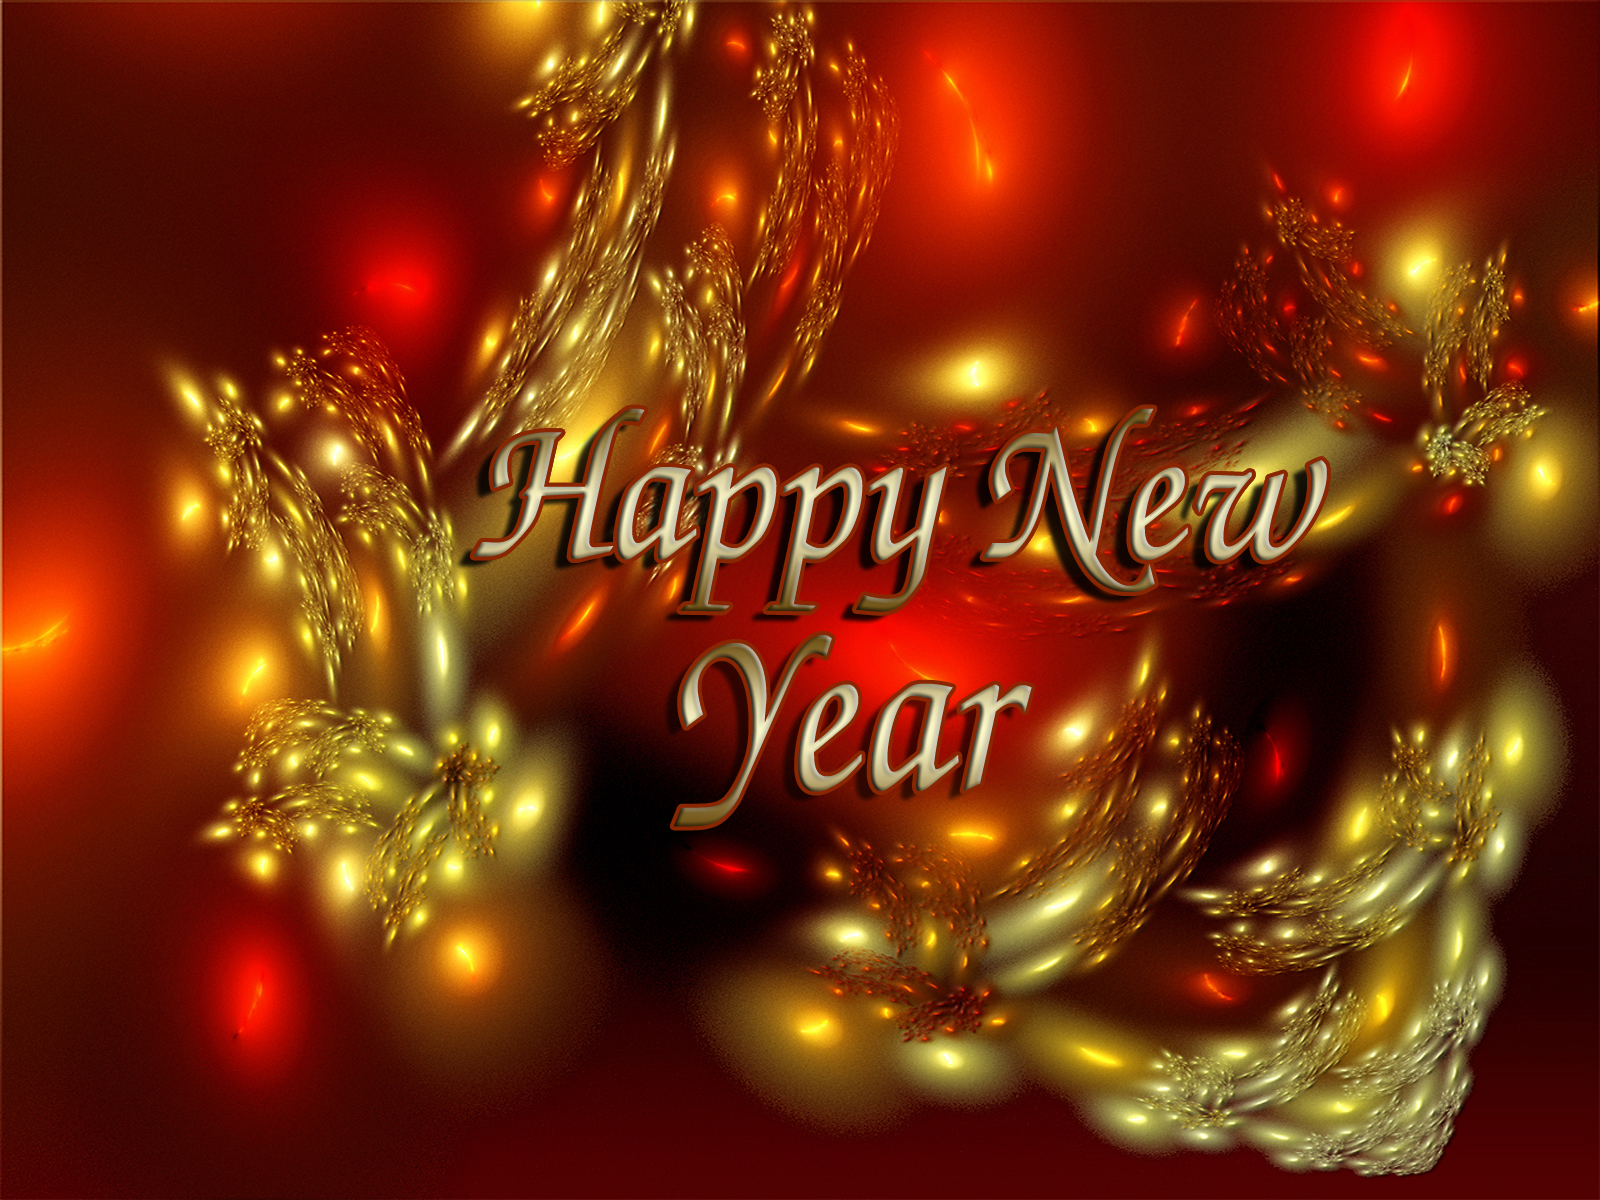 Wallpaper of Happy New Year ,Animated Cards of Wishing Year 2012